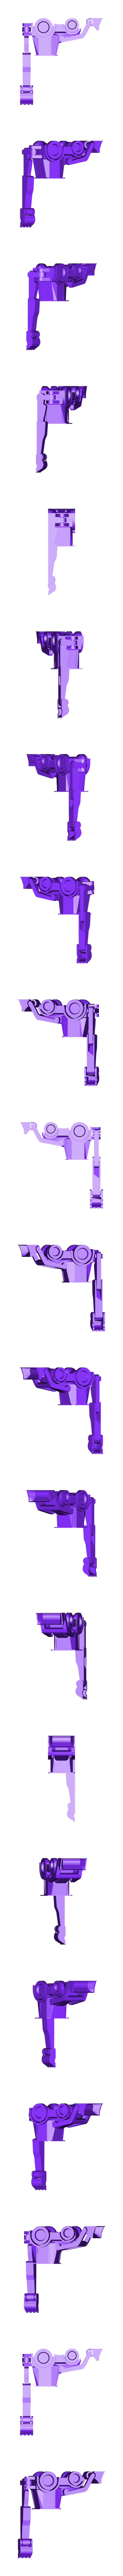 Backhoe.stl Download free STL file Backhoe • 3D print design, MakeItWork